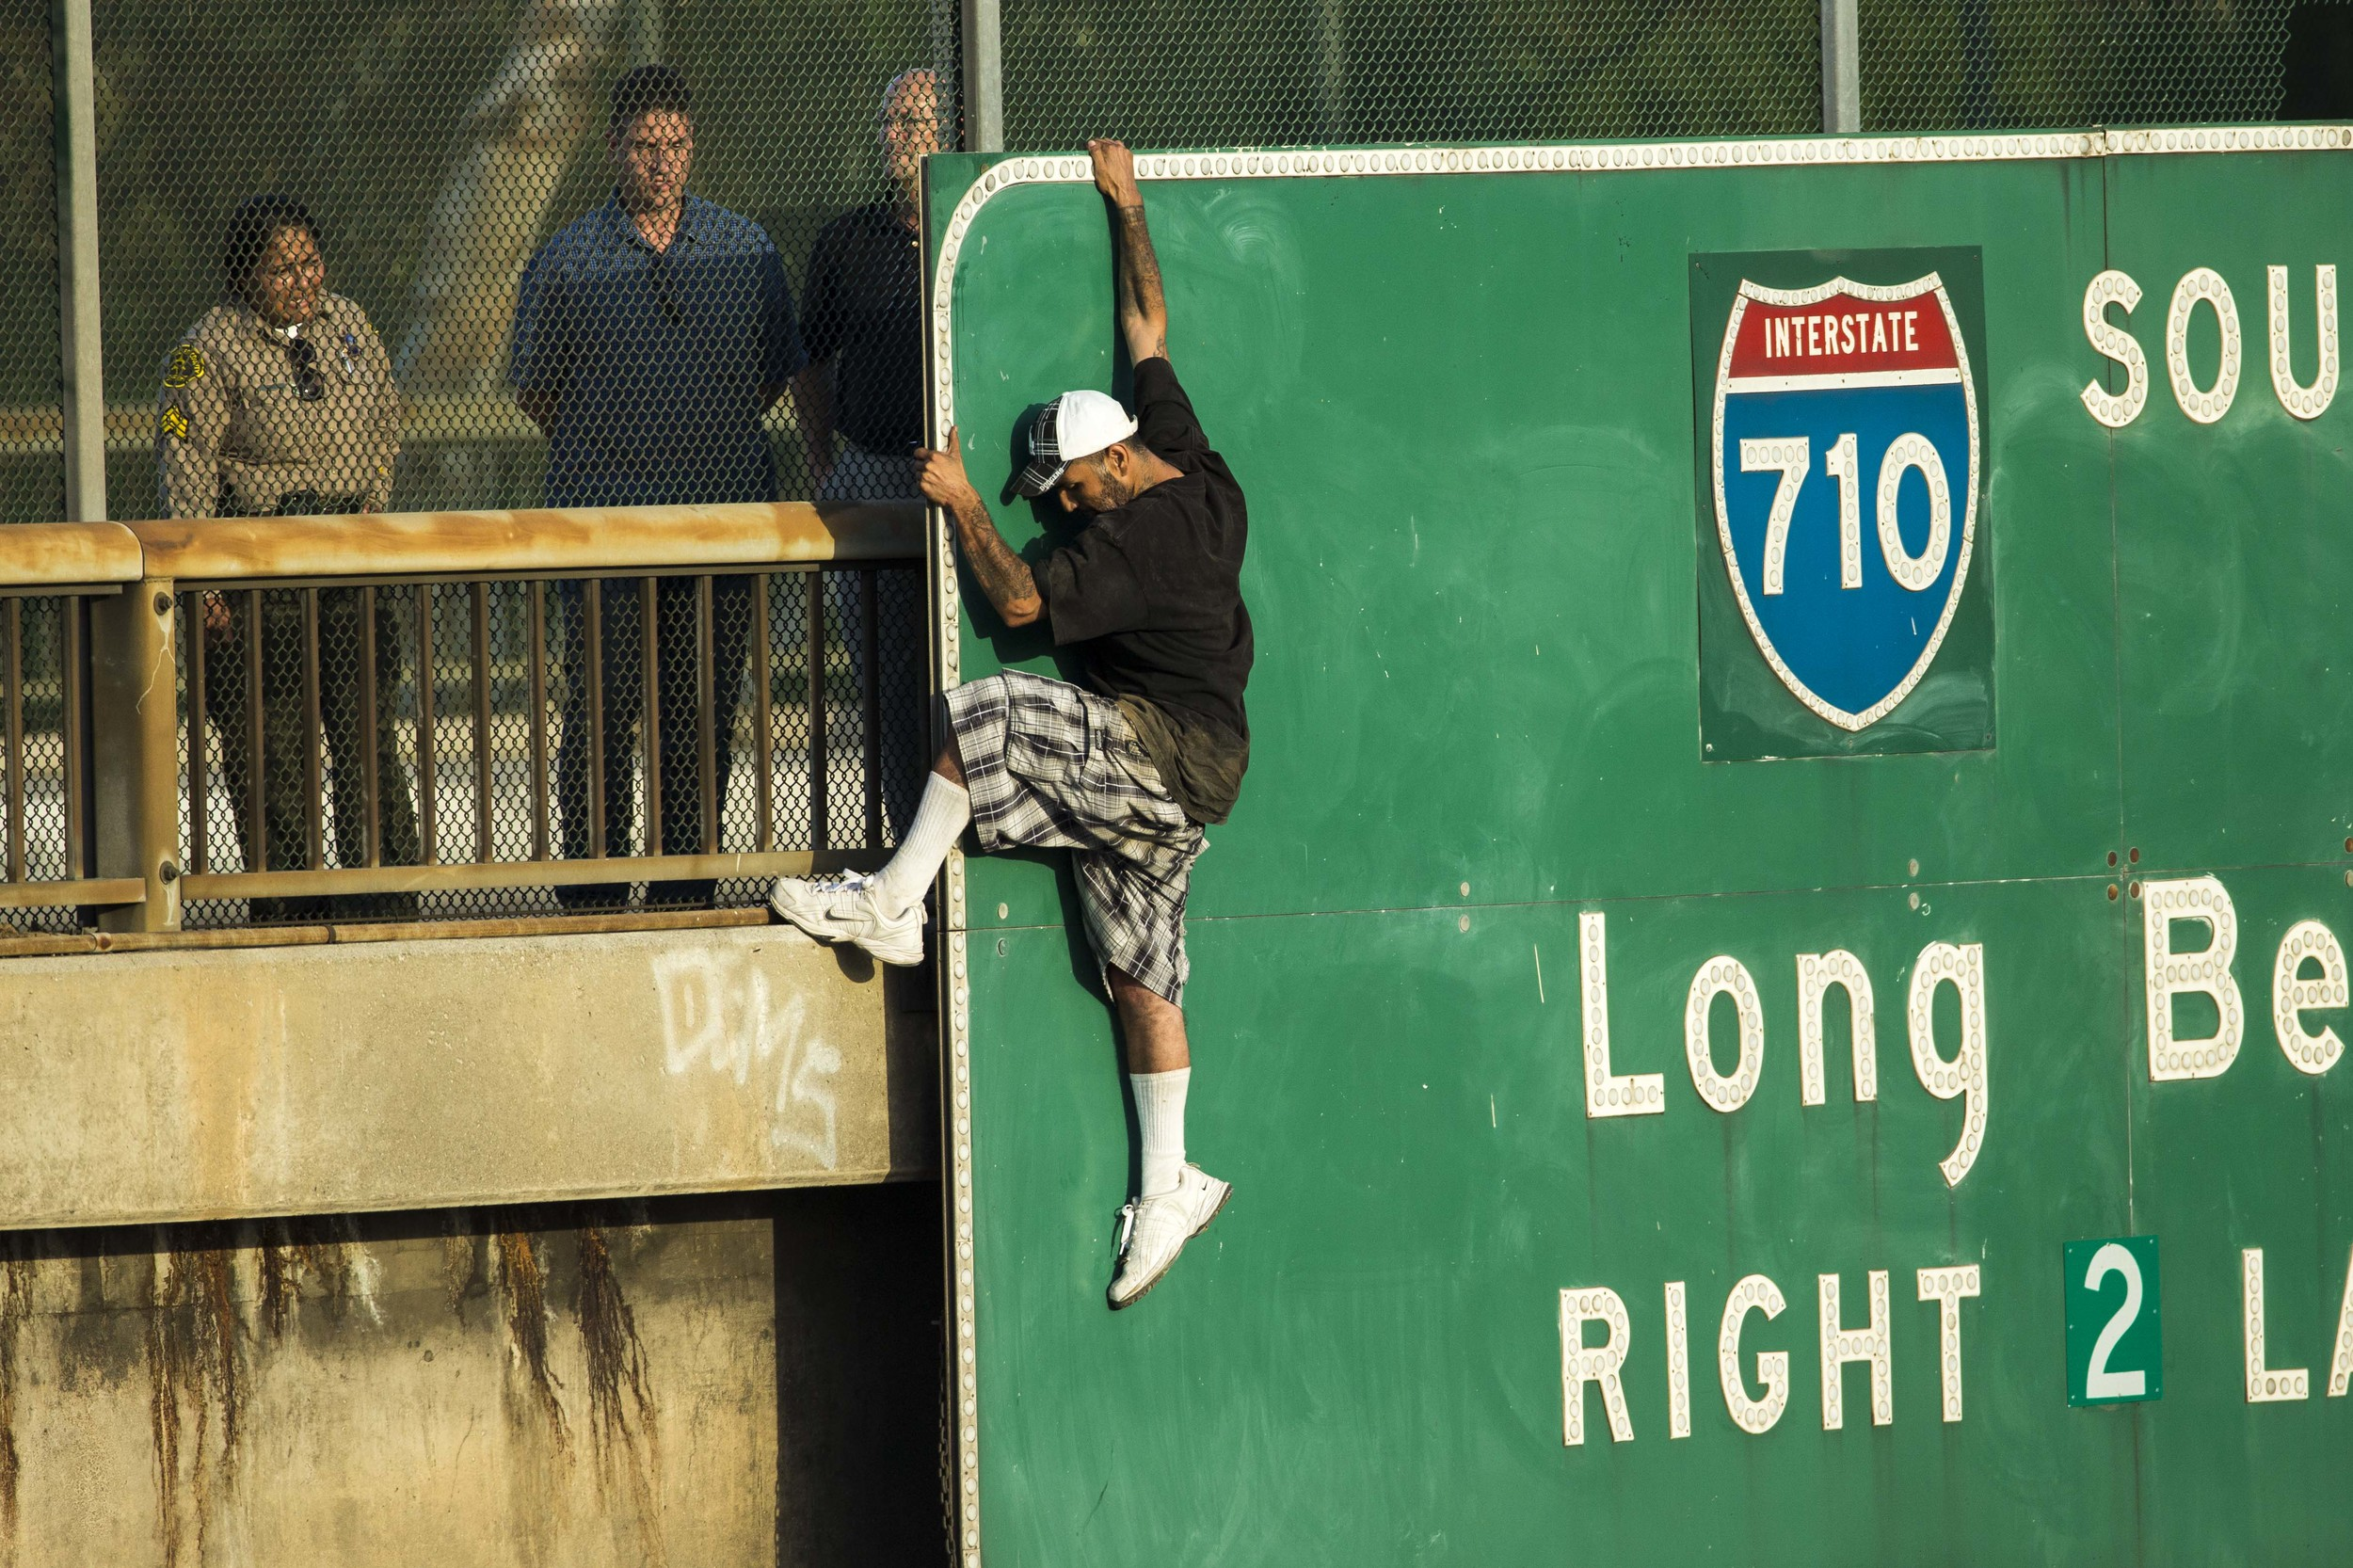 A man thought to be trying to jump climbs on a freeway sign on the Downey Rd. bridge over the 5 causing both directions to be closed on Friday July 25, 2014.